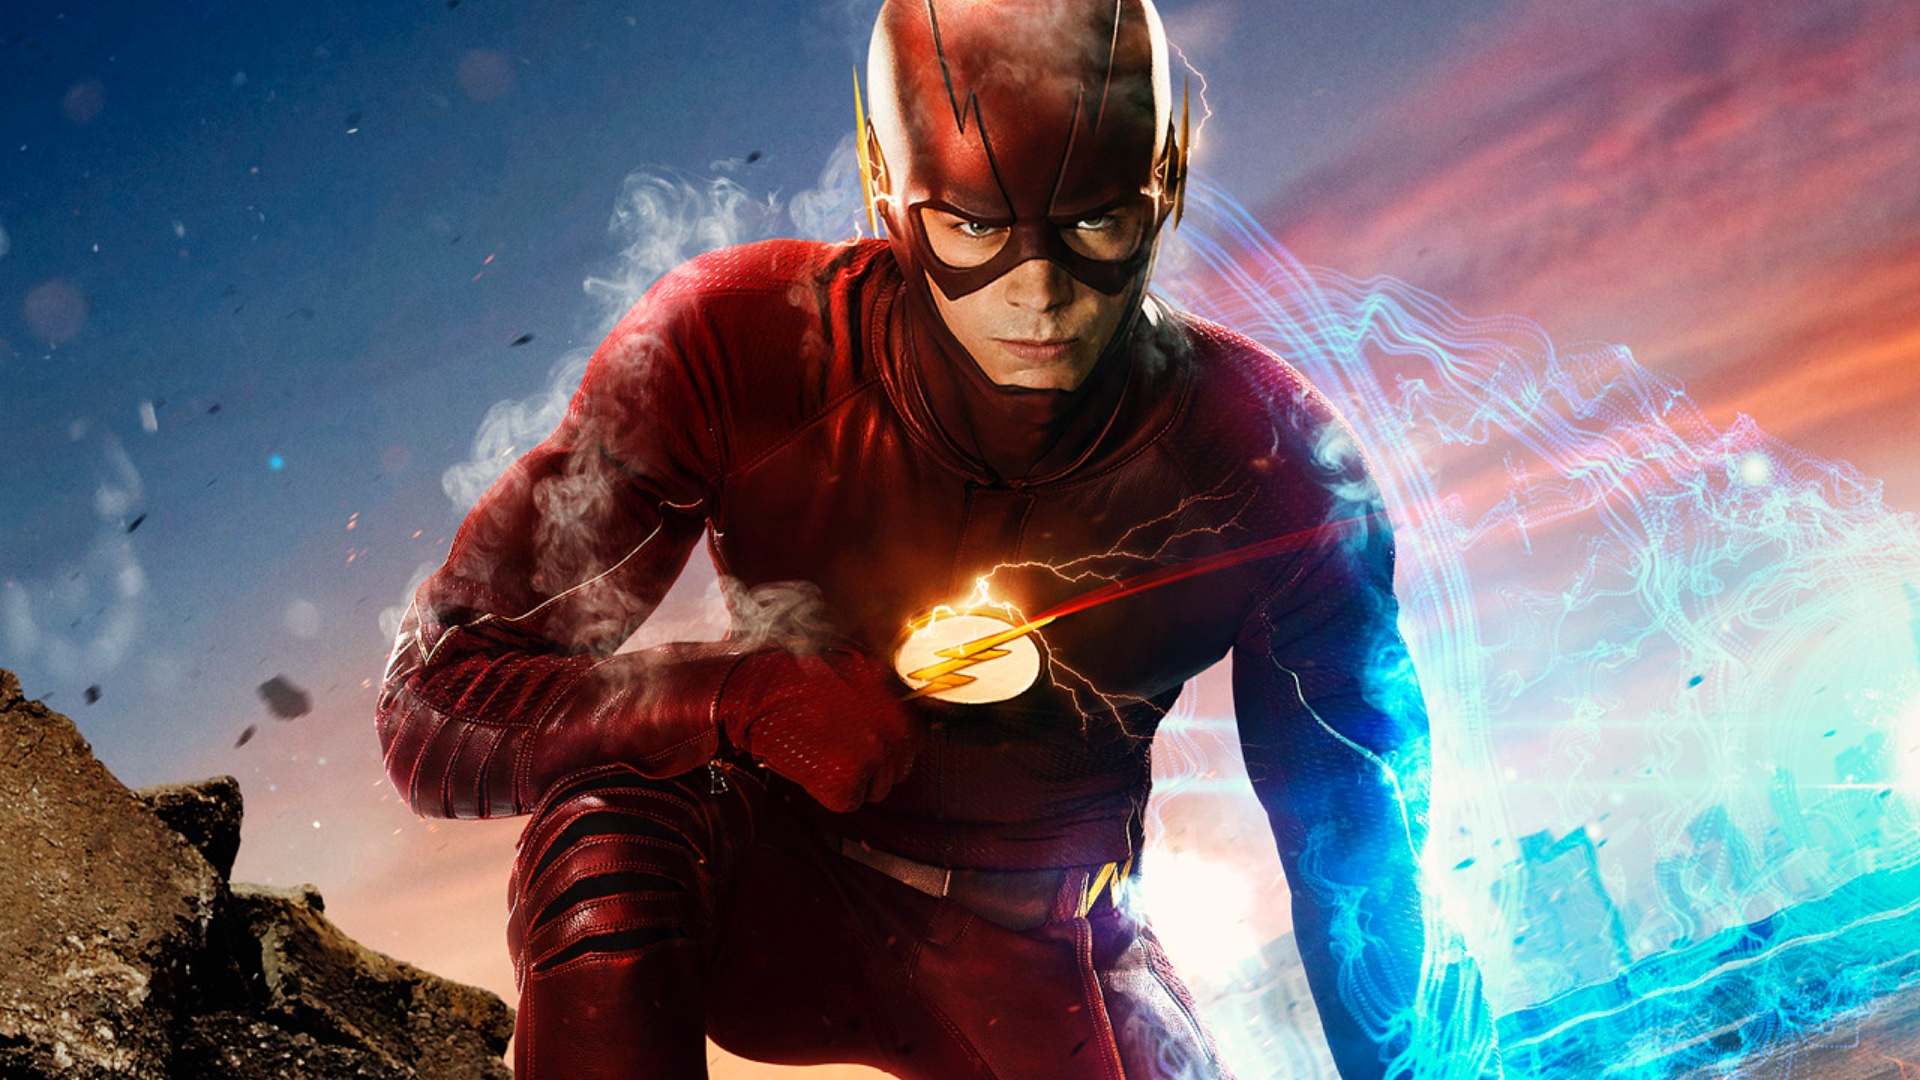 3 Flash Grant Gustin Says Barry Allen Is Forgetting His Powers In The